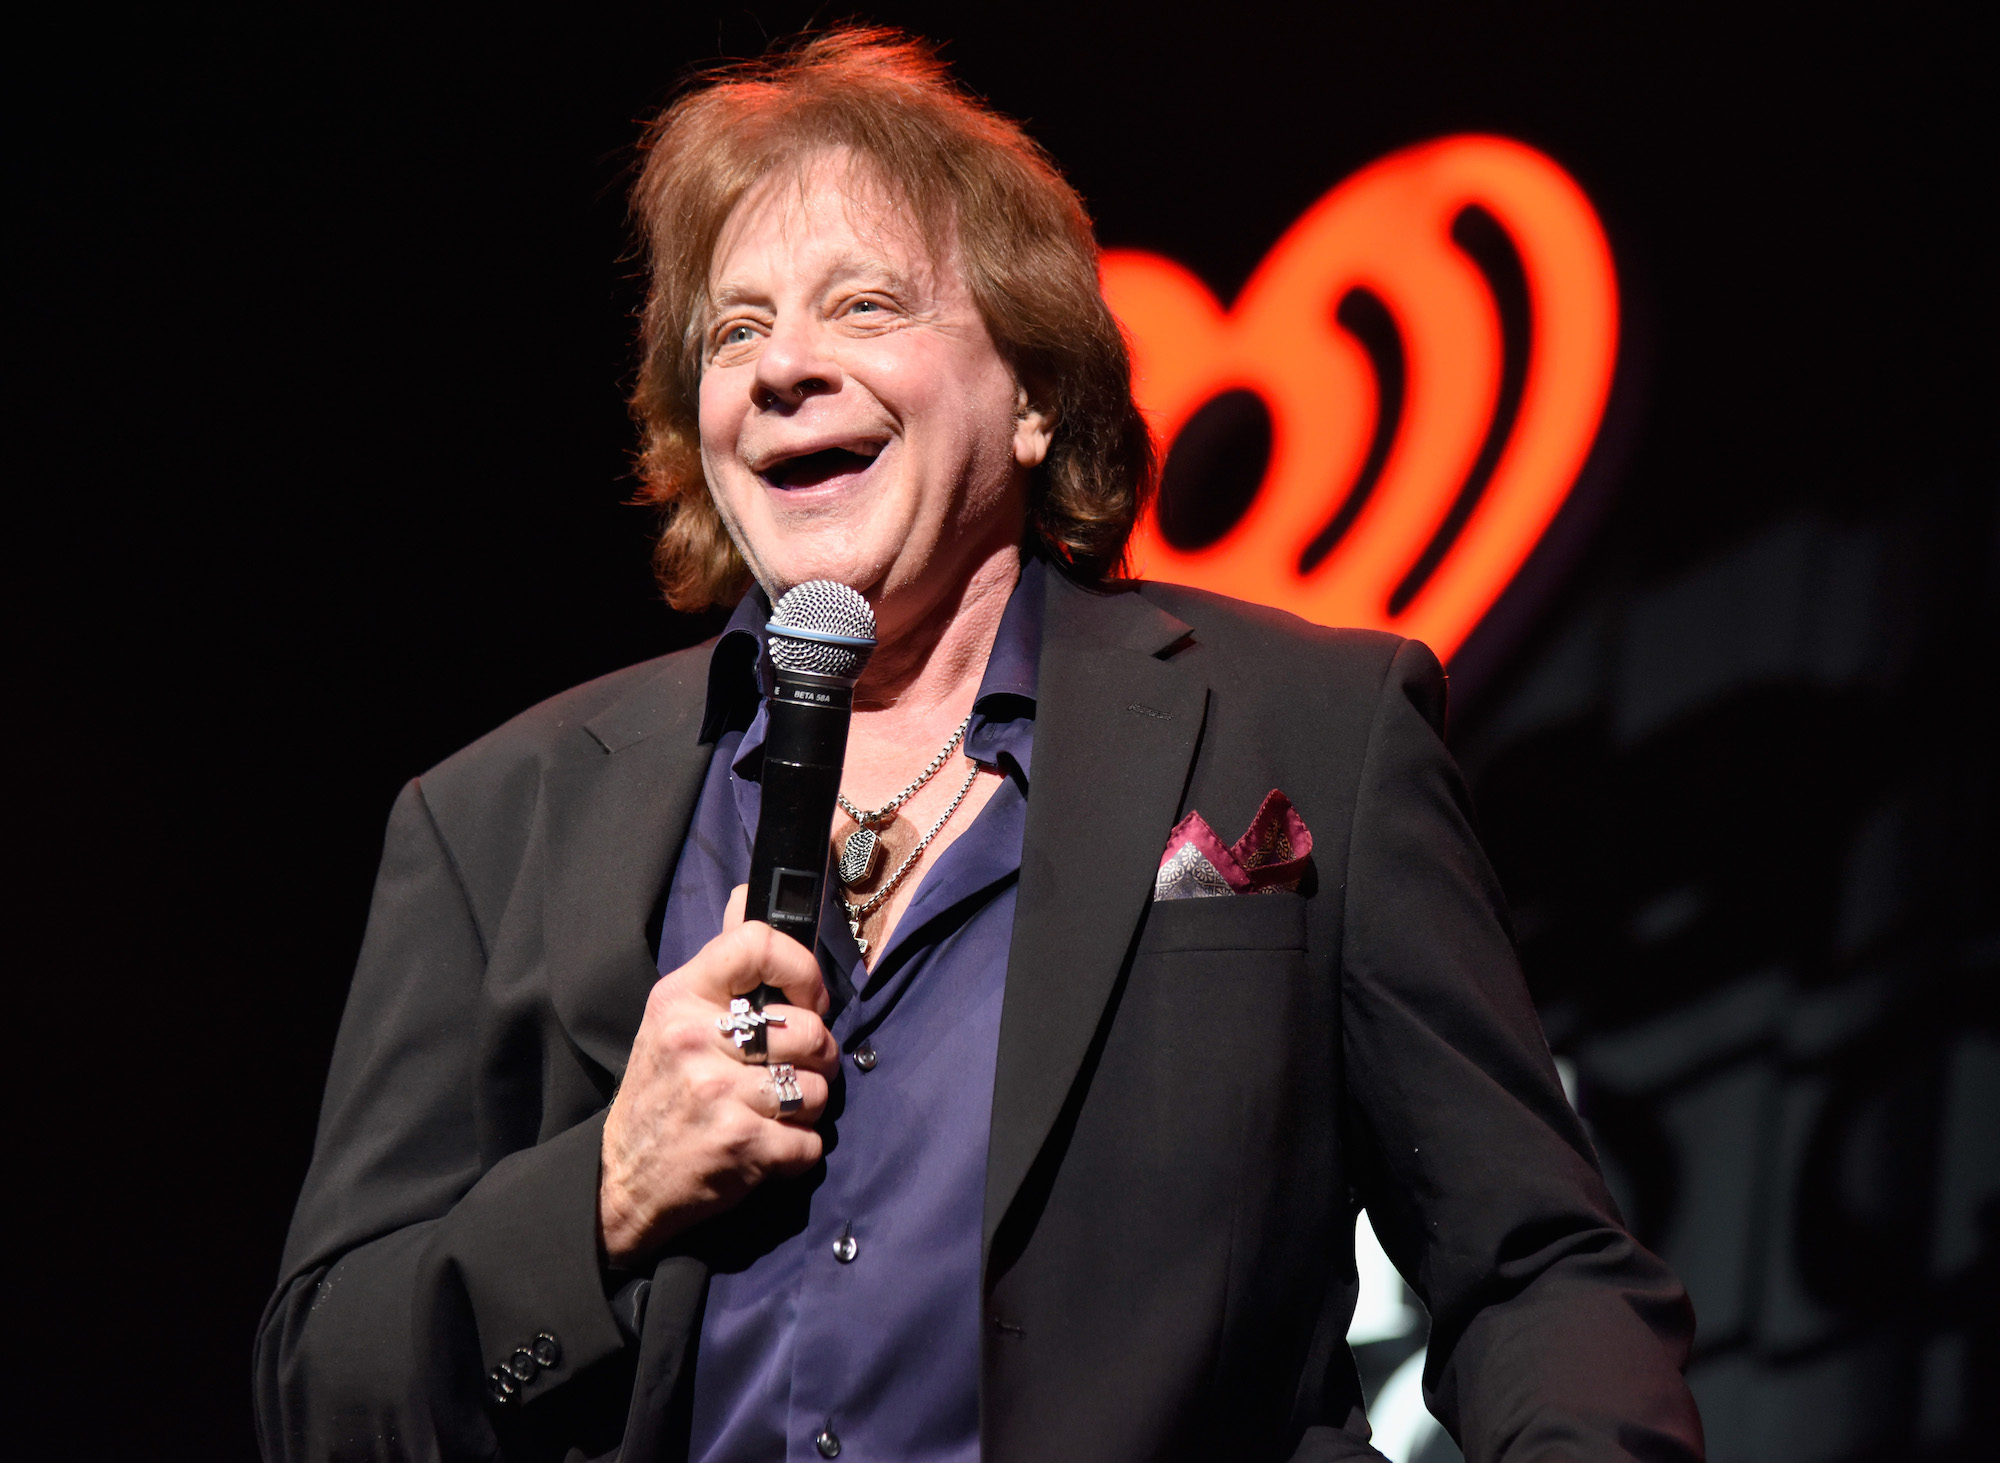 Musician Eddie Money performs on stage during the iHeart80s Party 2017 at SAP Center